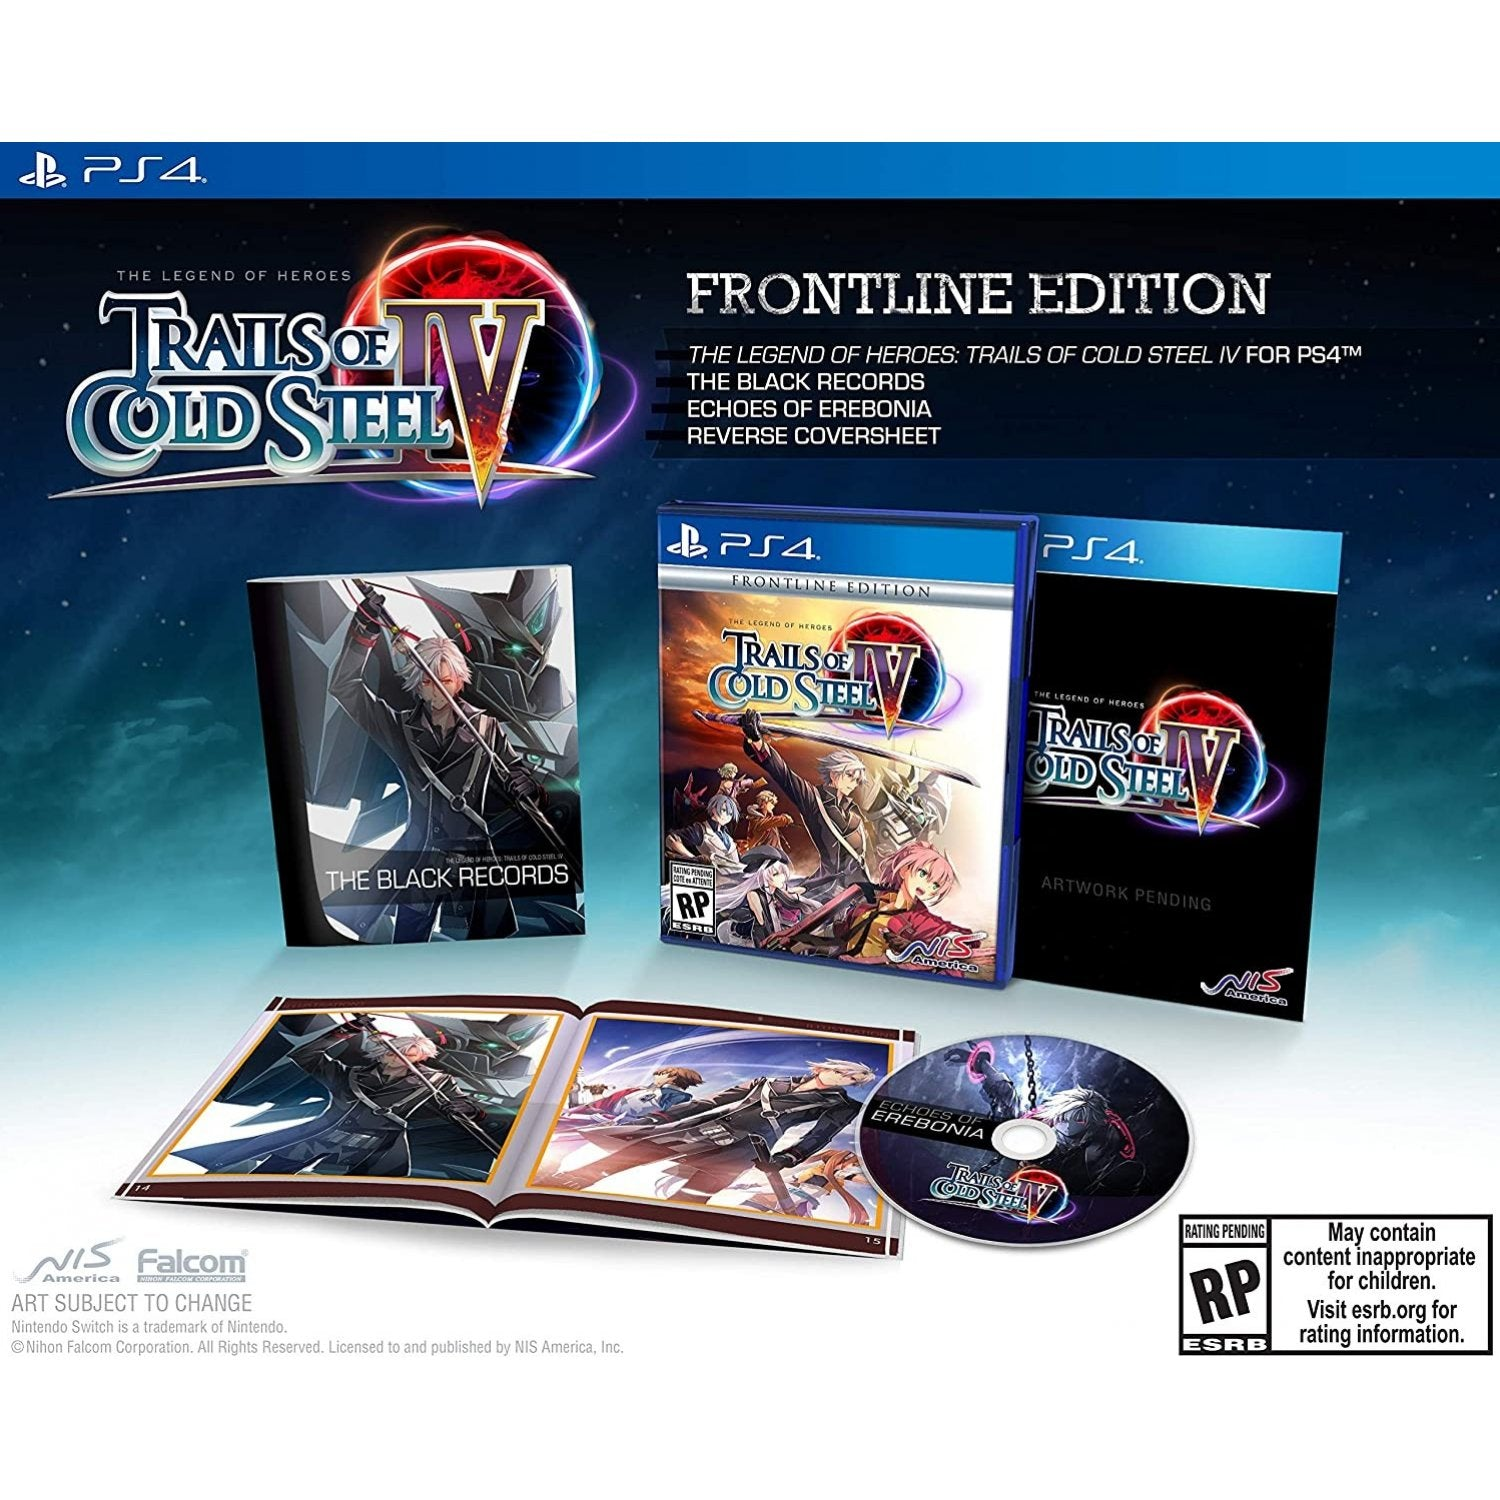 PS4 The Legend of Heroes: Trails of Cold Steel IV [Frontline Edition]